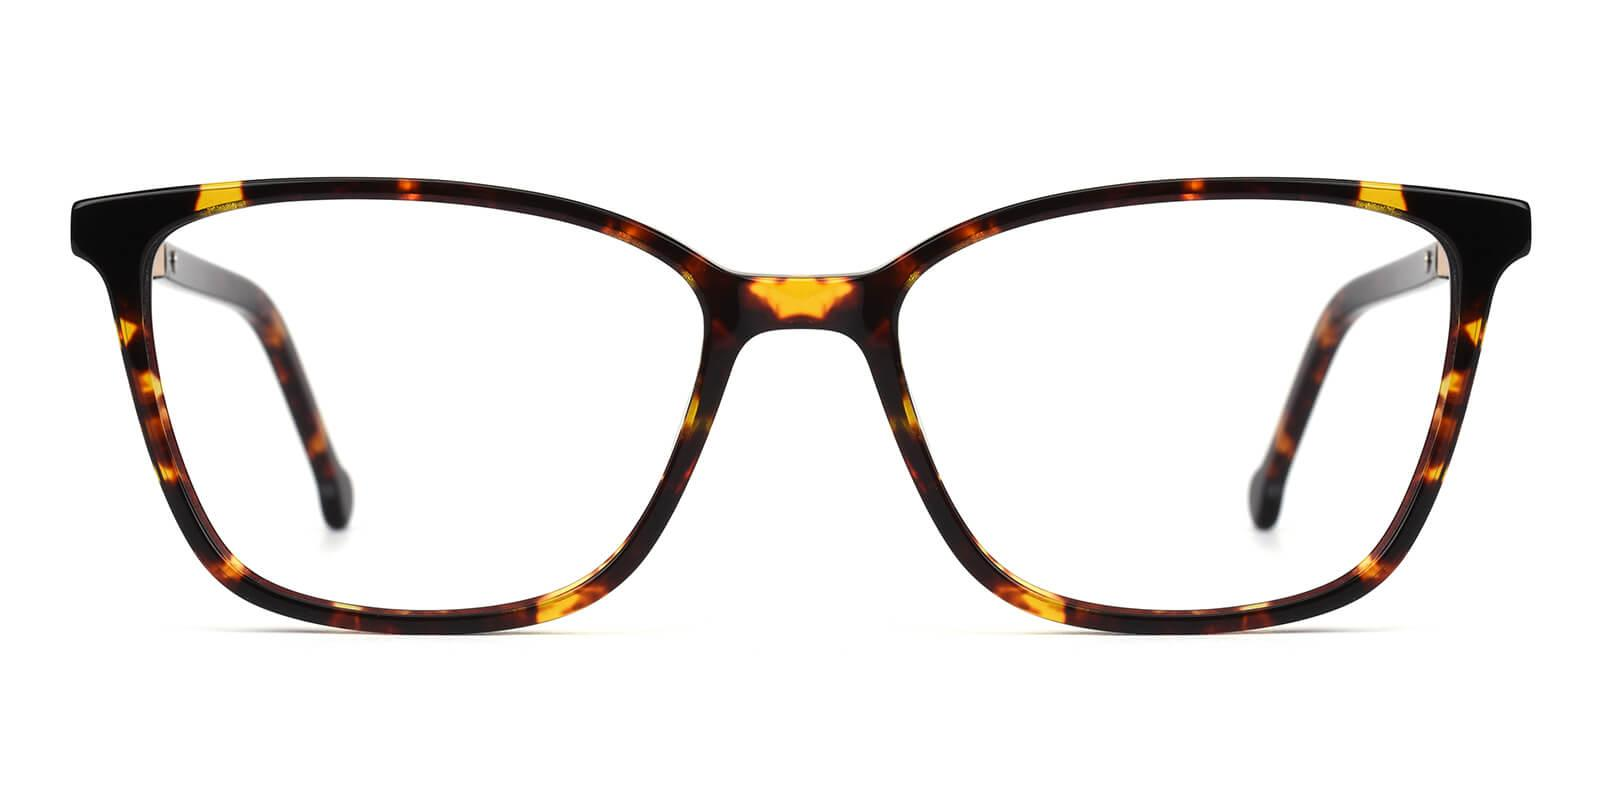 Ethan-Tortoise-Square-Acetate-Eyeglasses-additional2